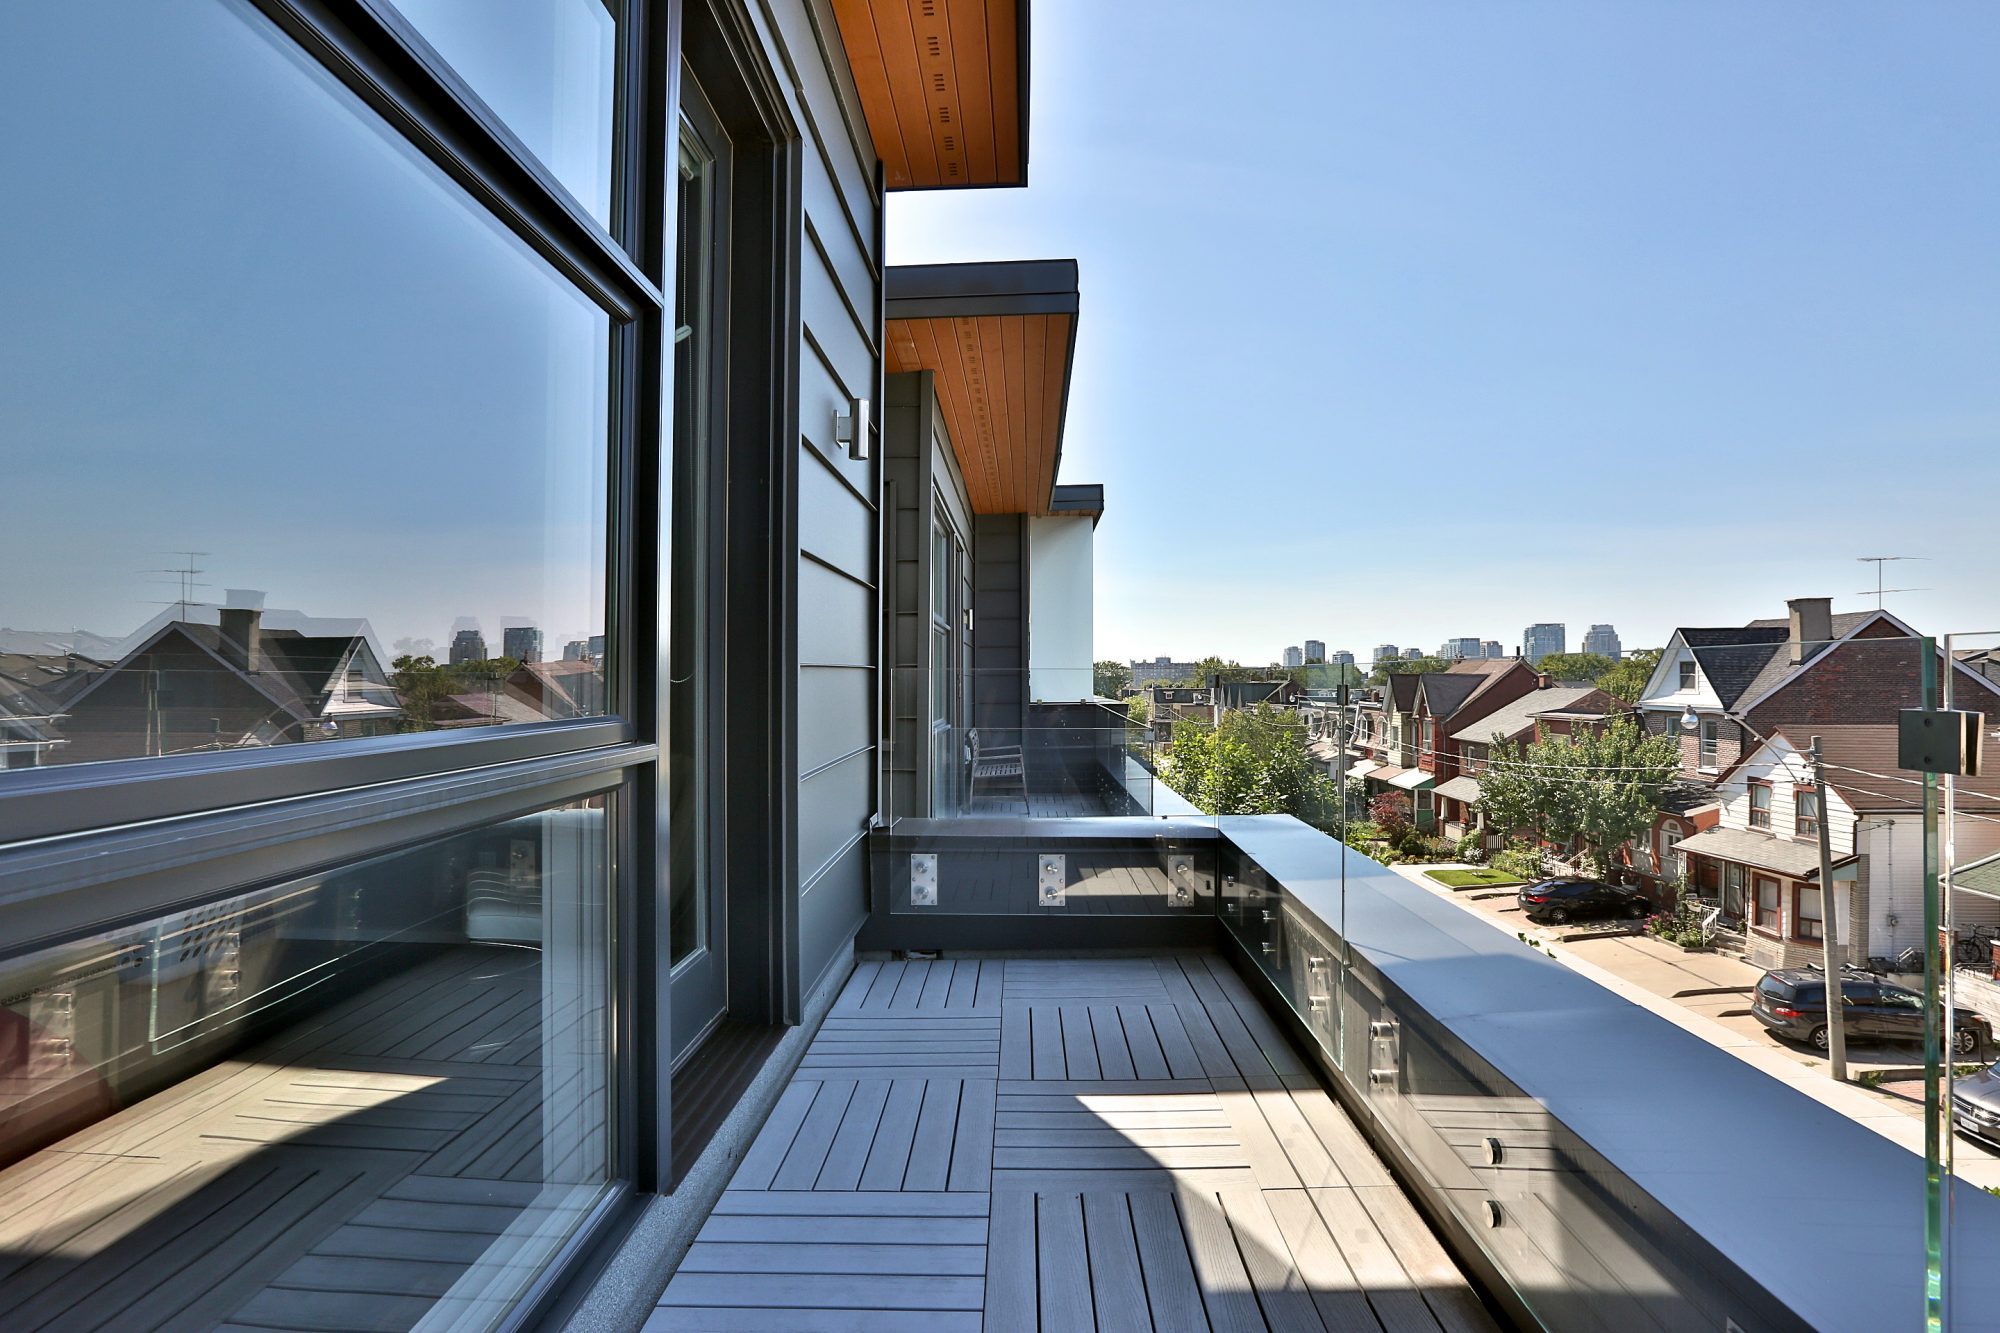 toronto-house-of-the-week-241-claremont-avenue-11